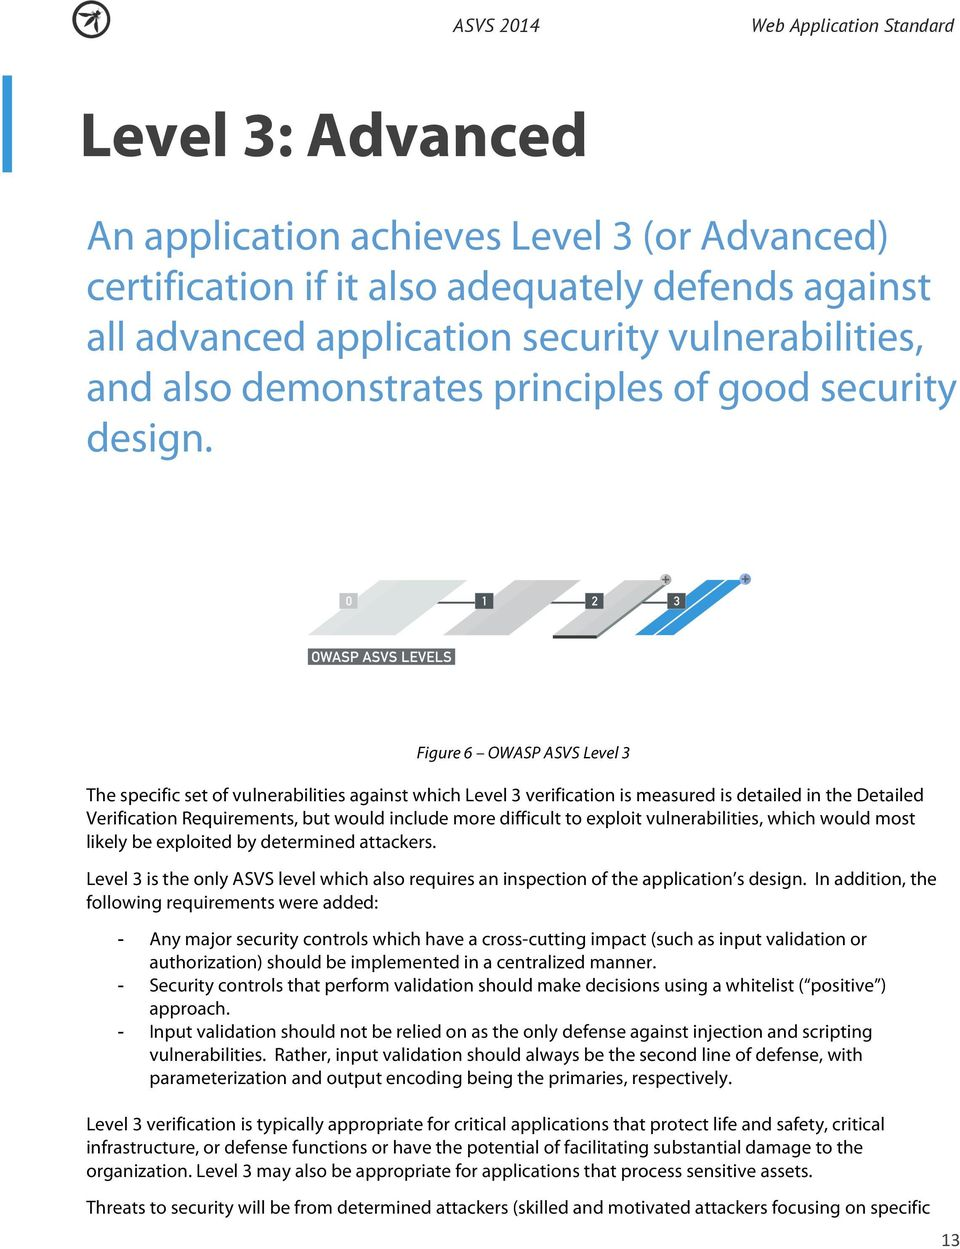 Figure 6 OWASP ASVS Level 3 The specific set of vulnerabilities against which Level 3 verification is measured is detailed in the Detailed Verification Requirements, but would include more difficult